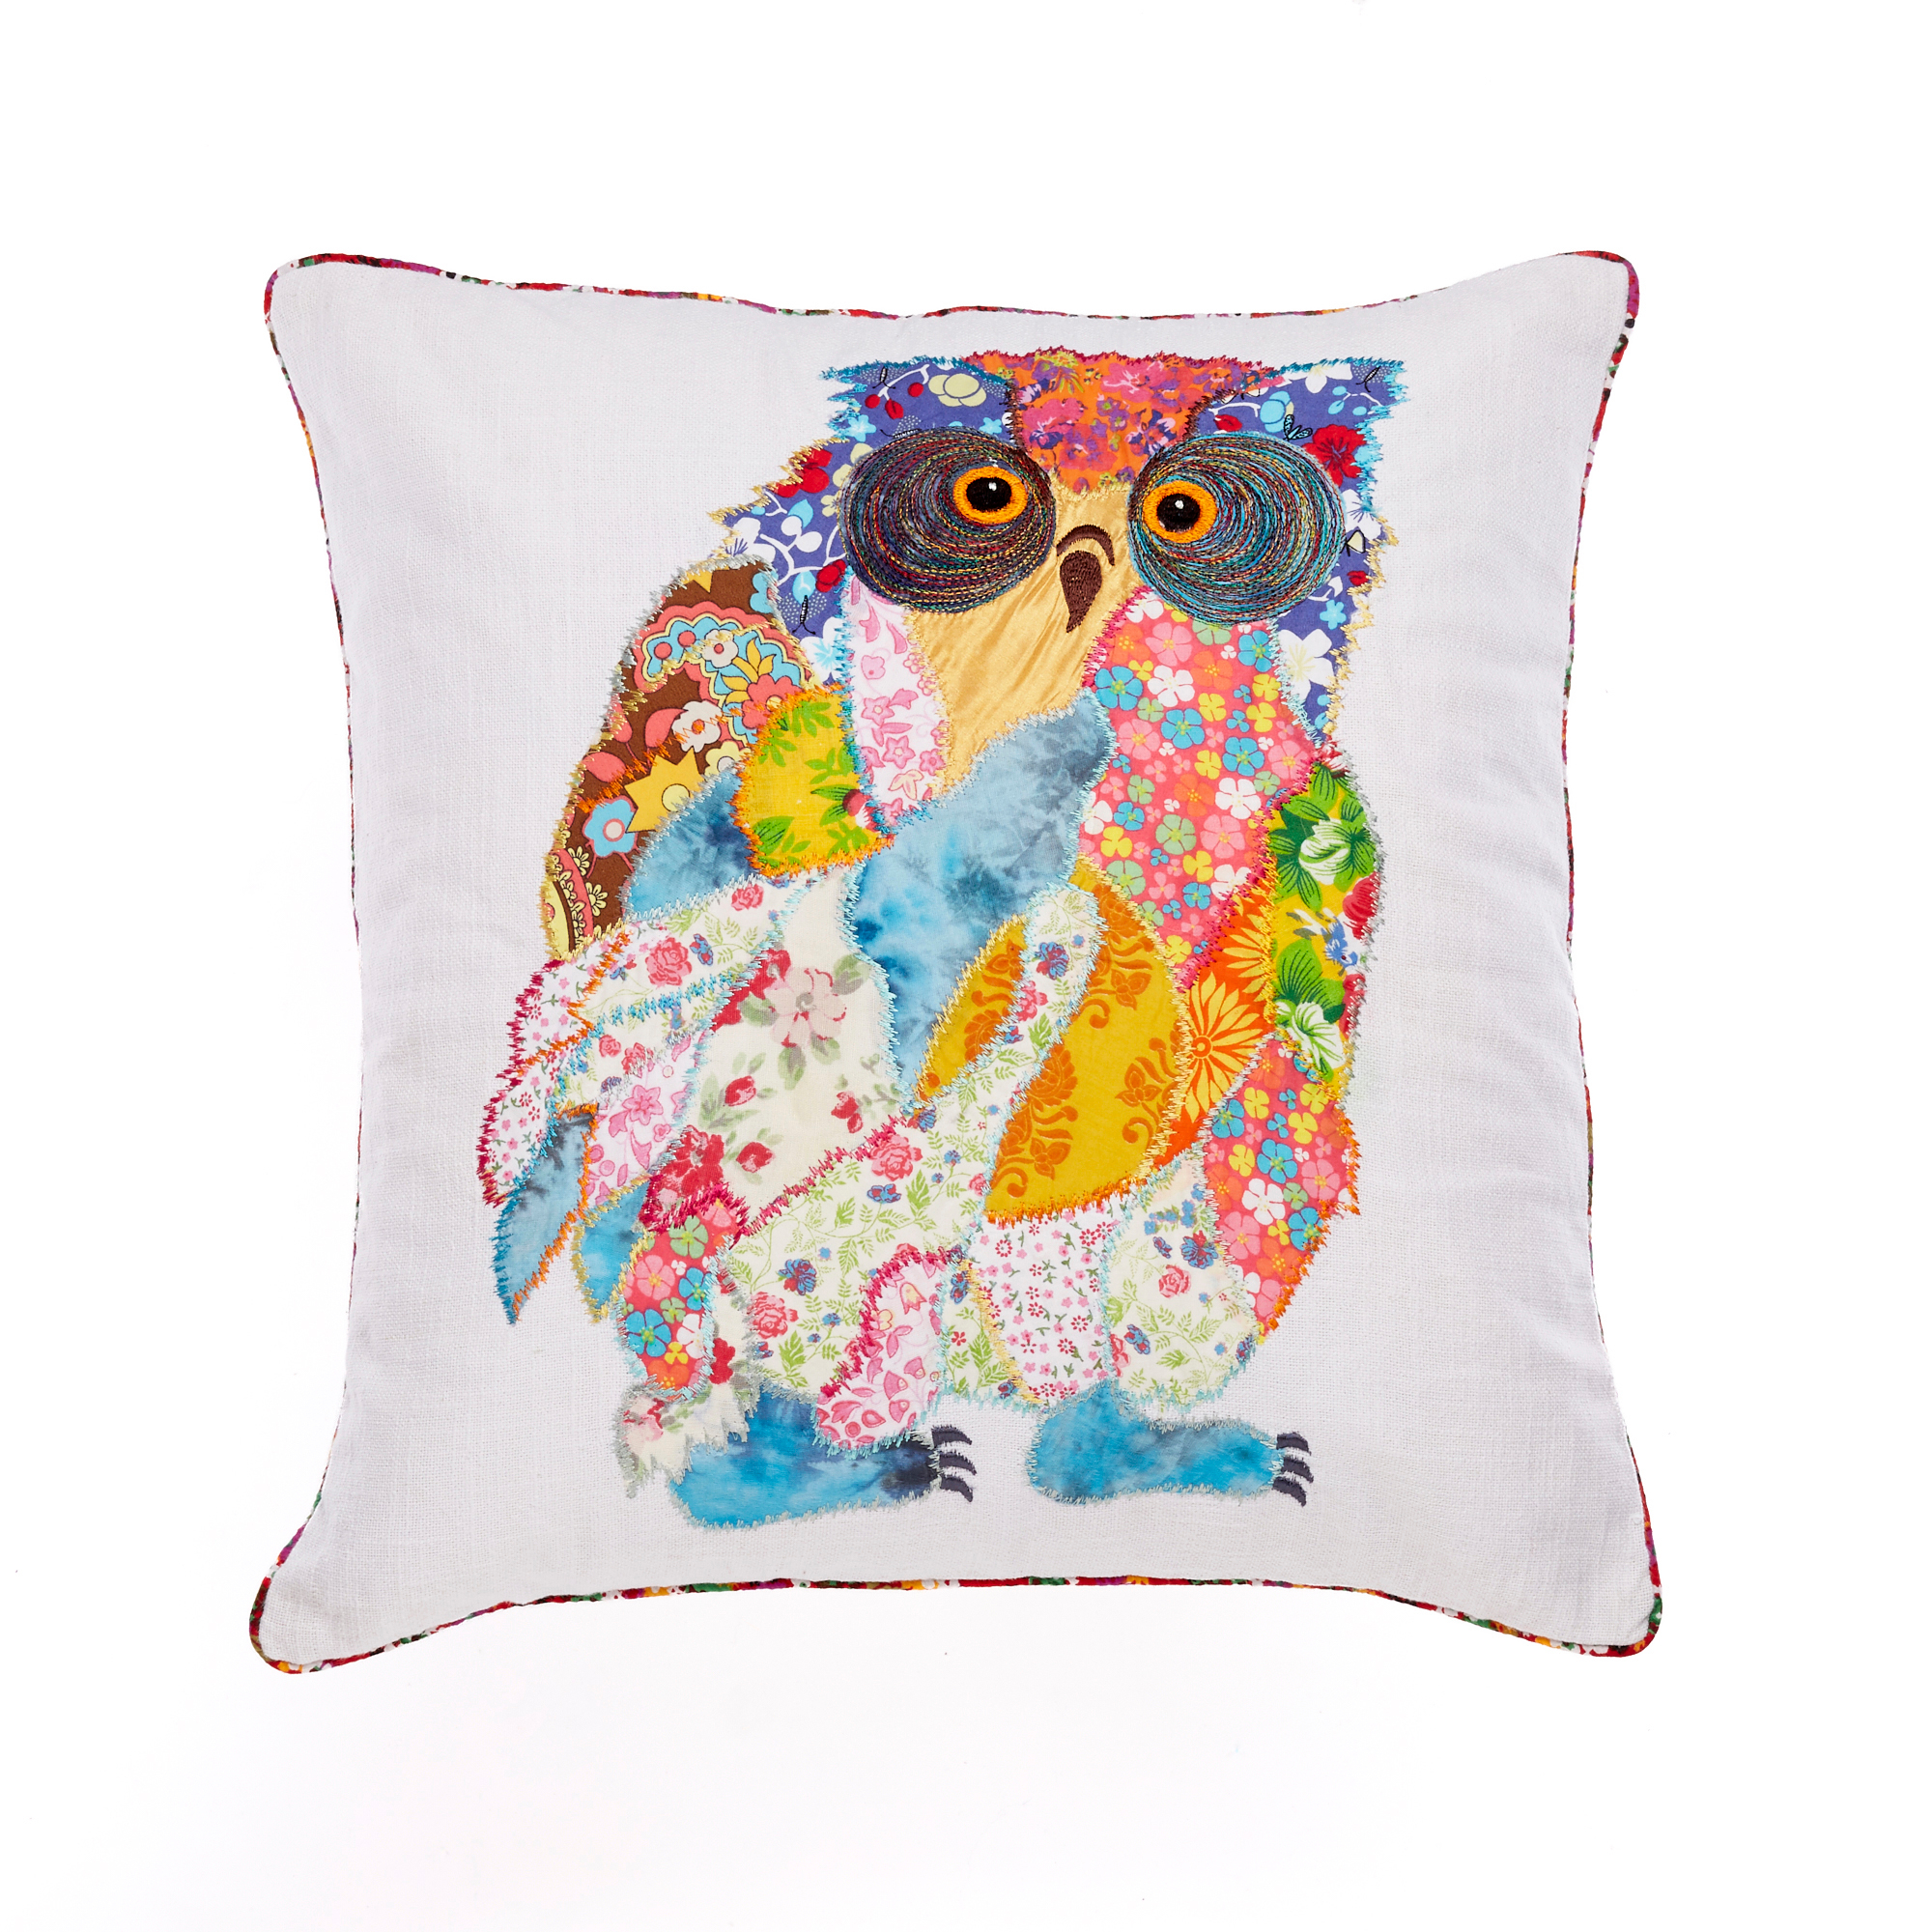 Bohemian Pillows, Owl